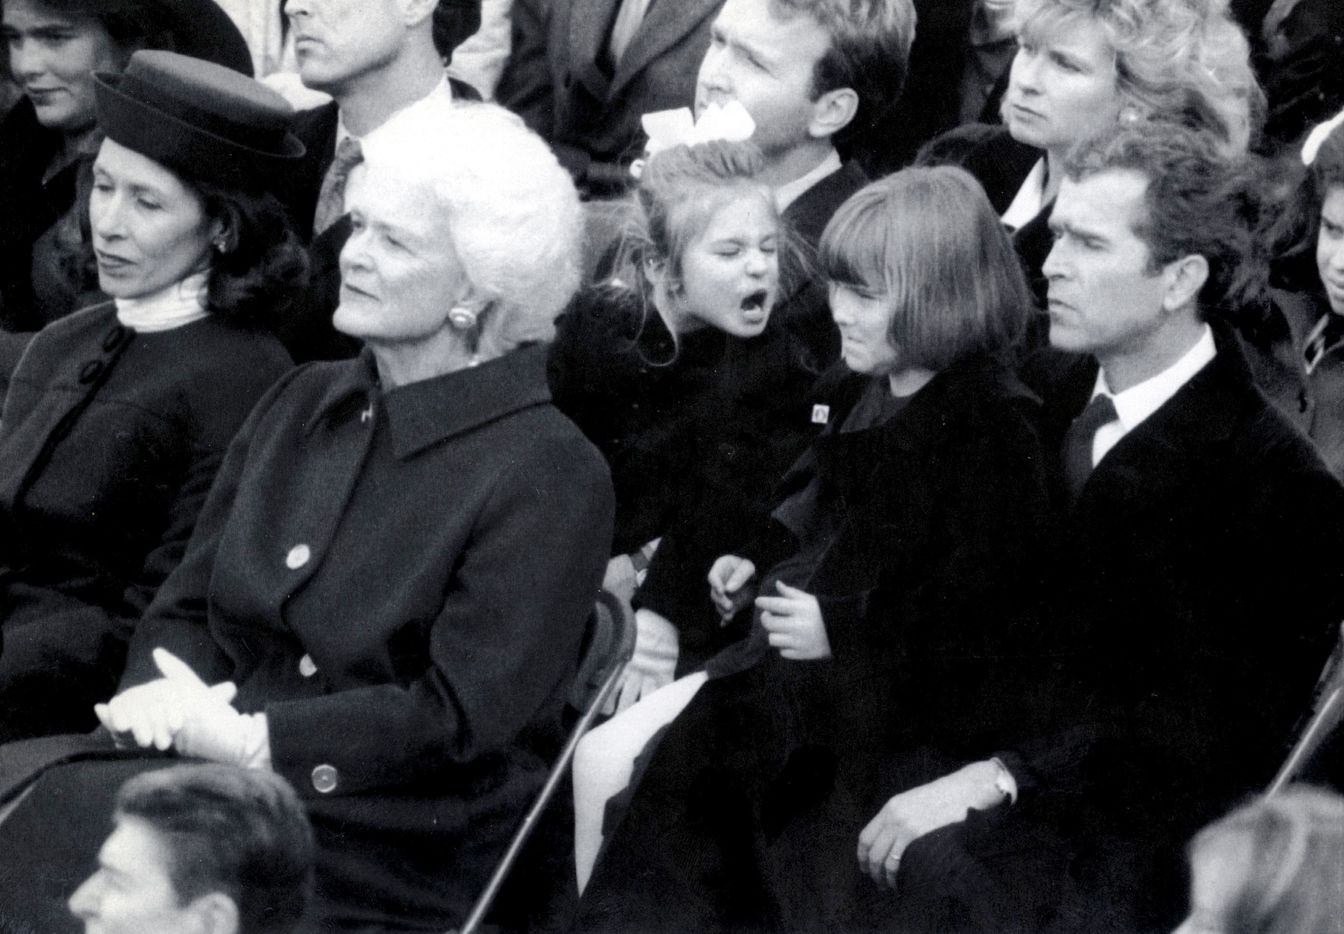 Barbara Bush (front left), and George W. Bush (far right), listen during the 1989 presidential inauguration of George H.W. Bush. At the moment there was a childhood disagreement taking place between cousins Lauren Bush, 4, (yelling) and George W.'s daughter Barbara Bush, 7.